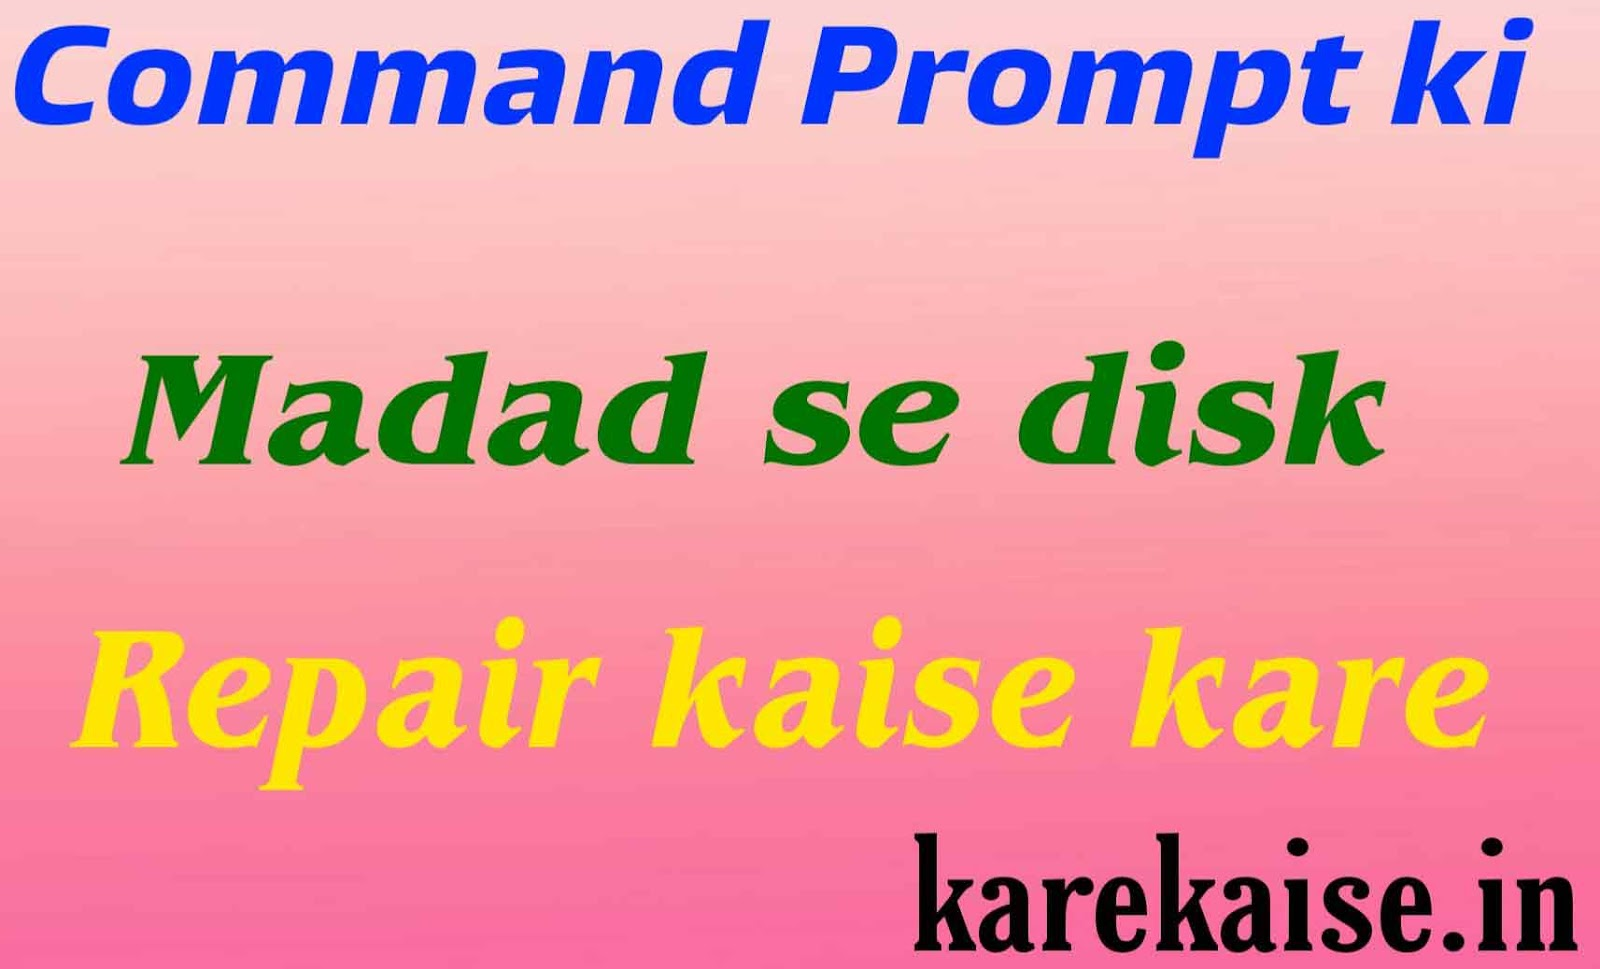 Command-Prompt-Ki-Madad-Se-Disk-Repair-Kaise-Kare